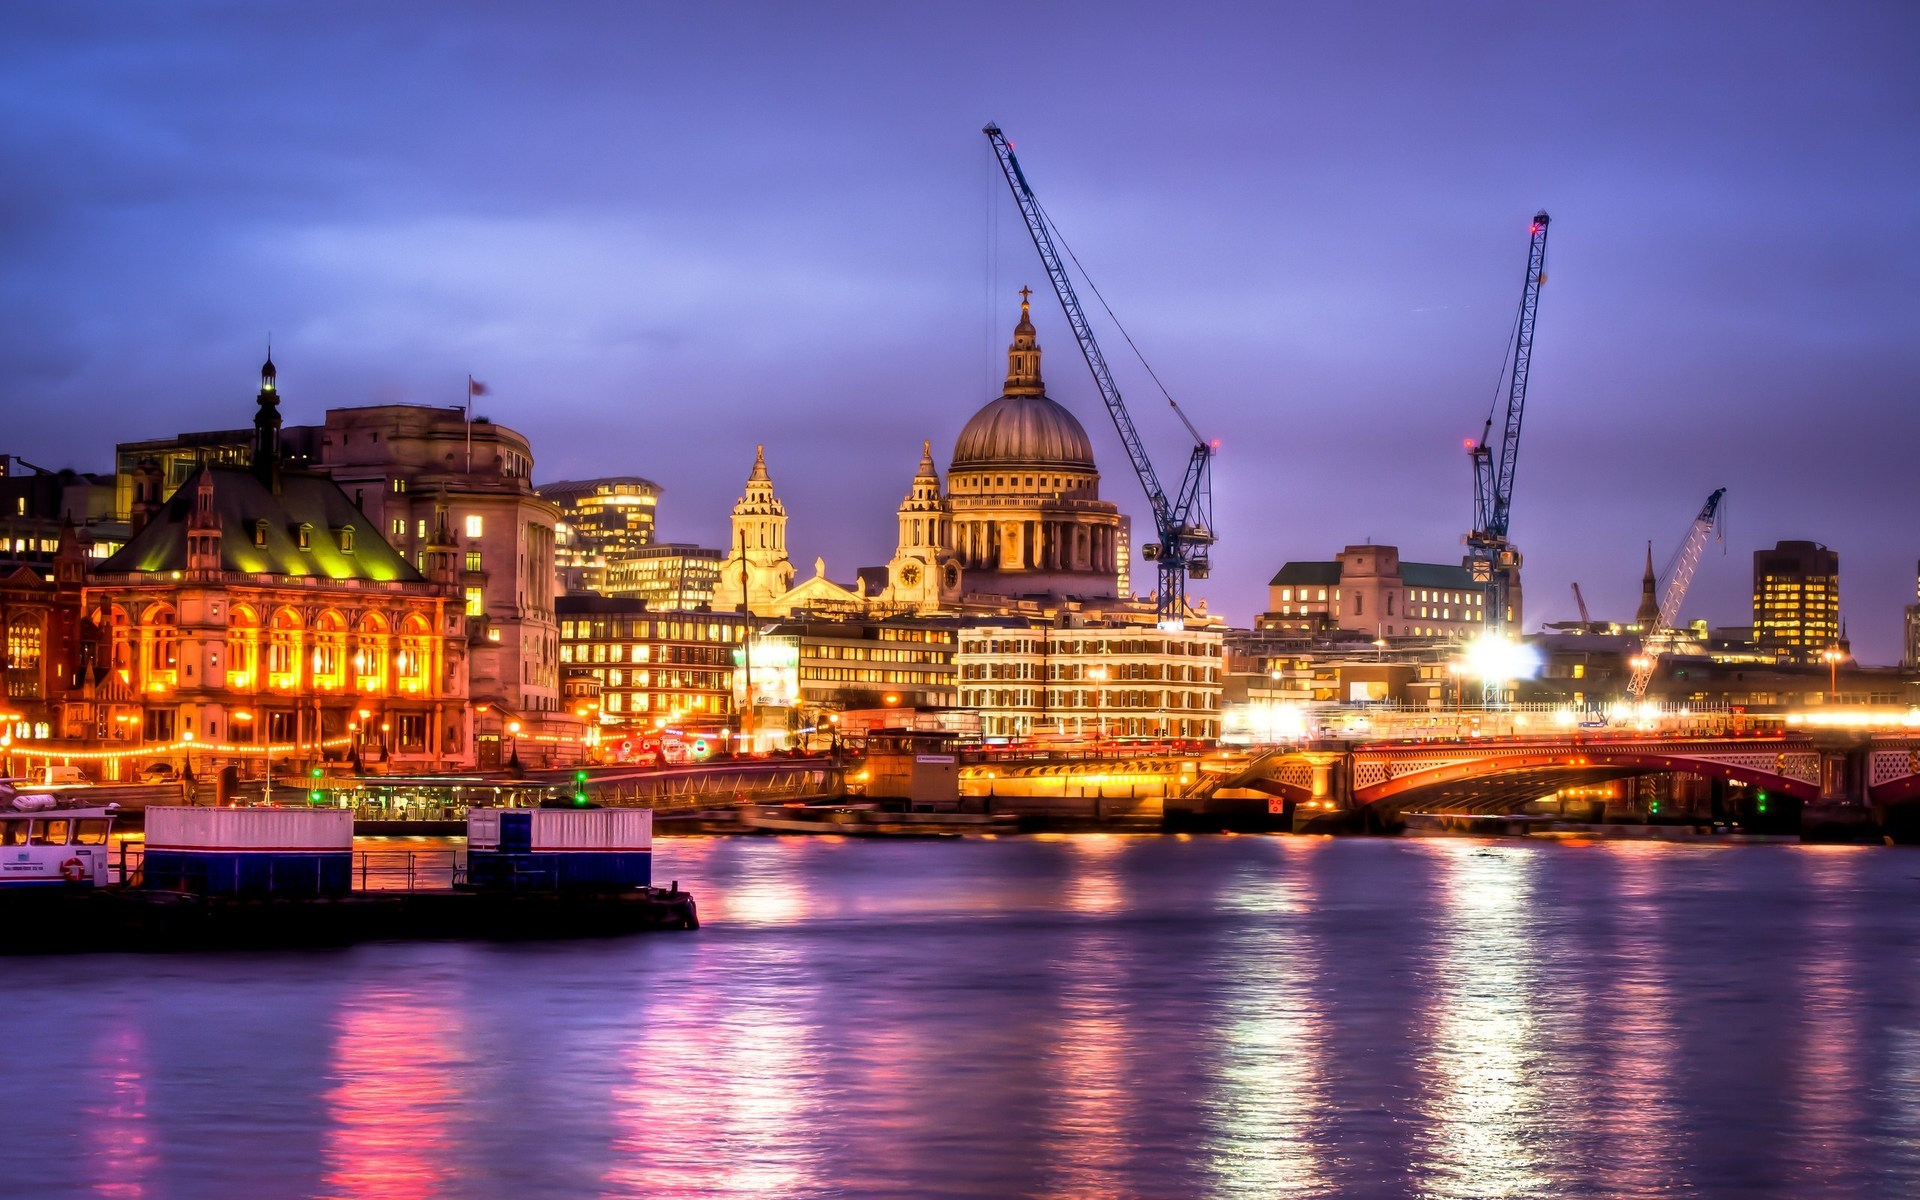 Imagenes Para Lapto: St Pauls Cathedral Full HD Wallpaper And Background Image